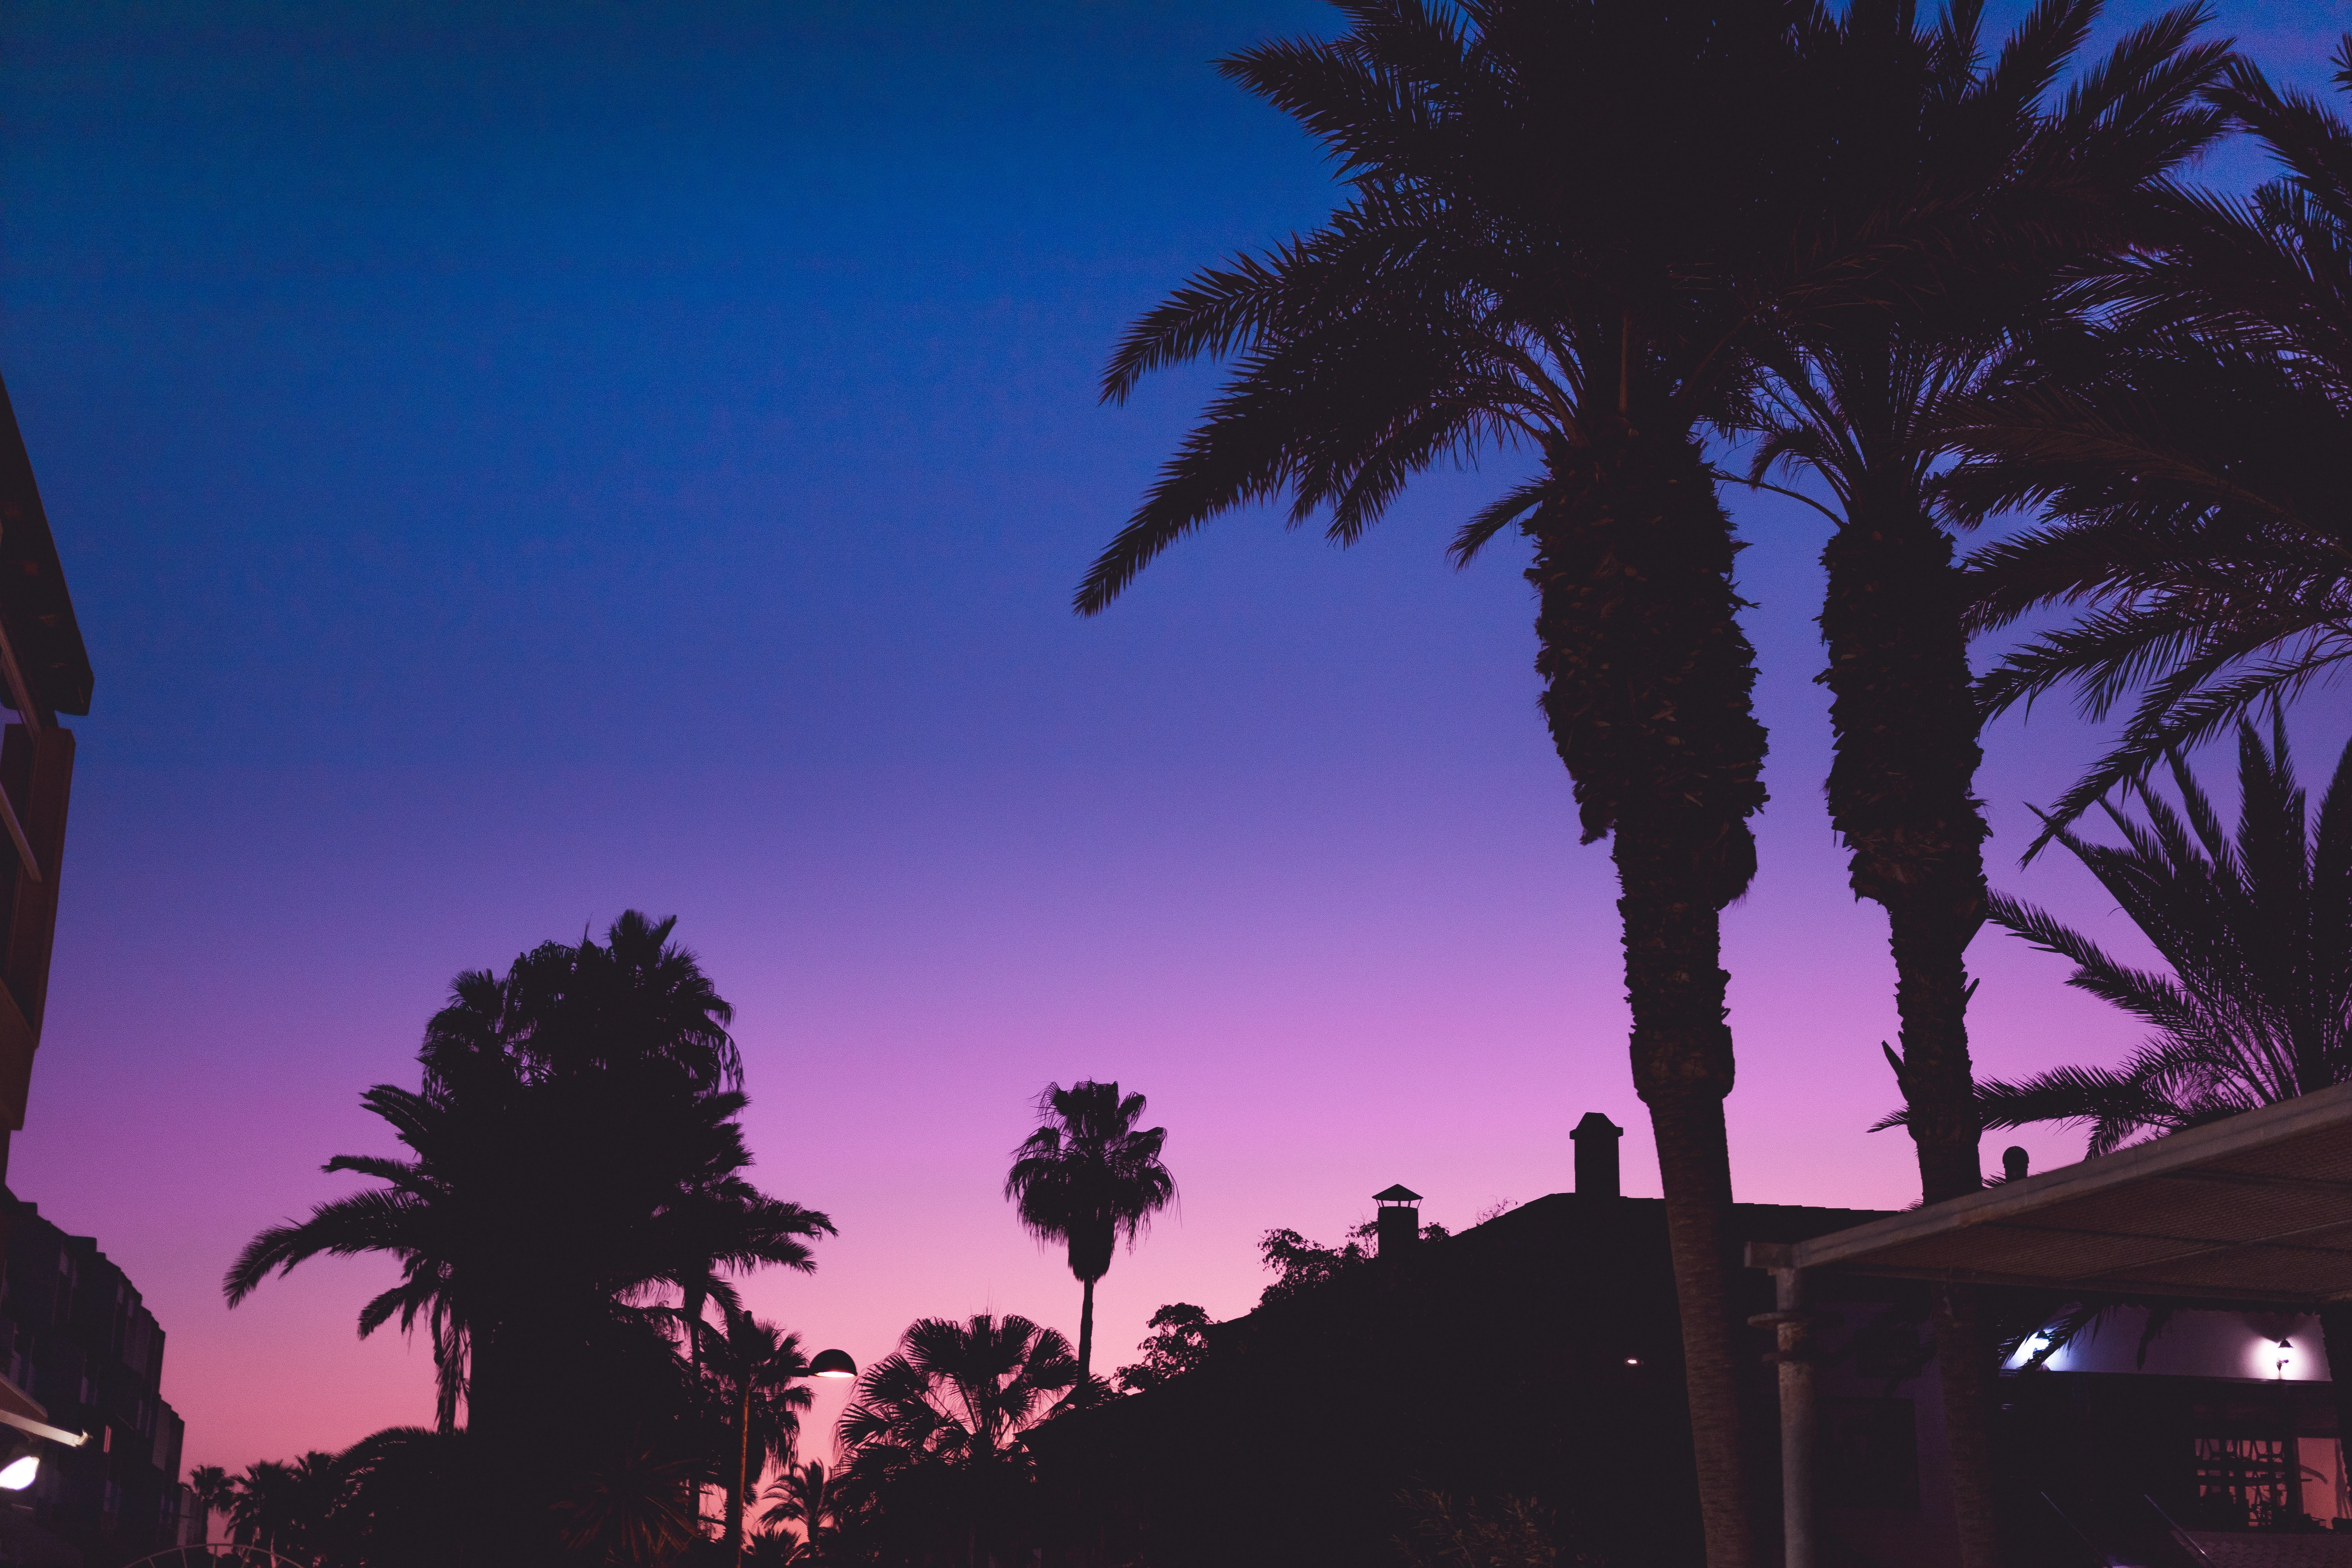 palm trees at night-time